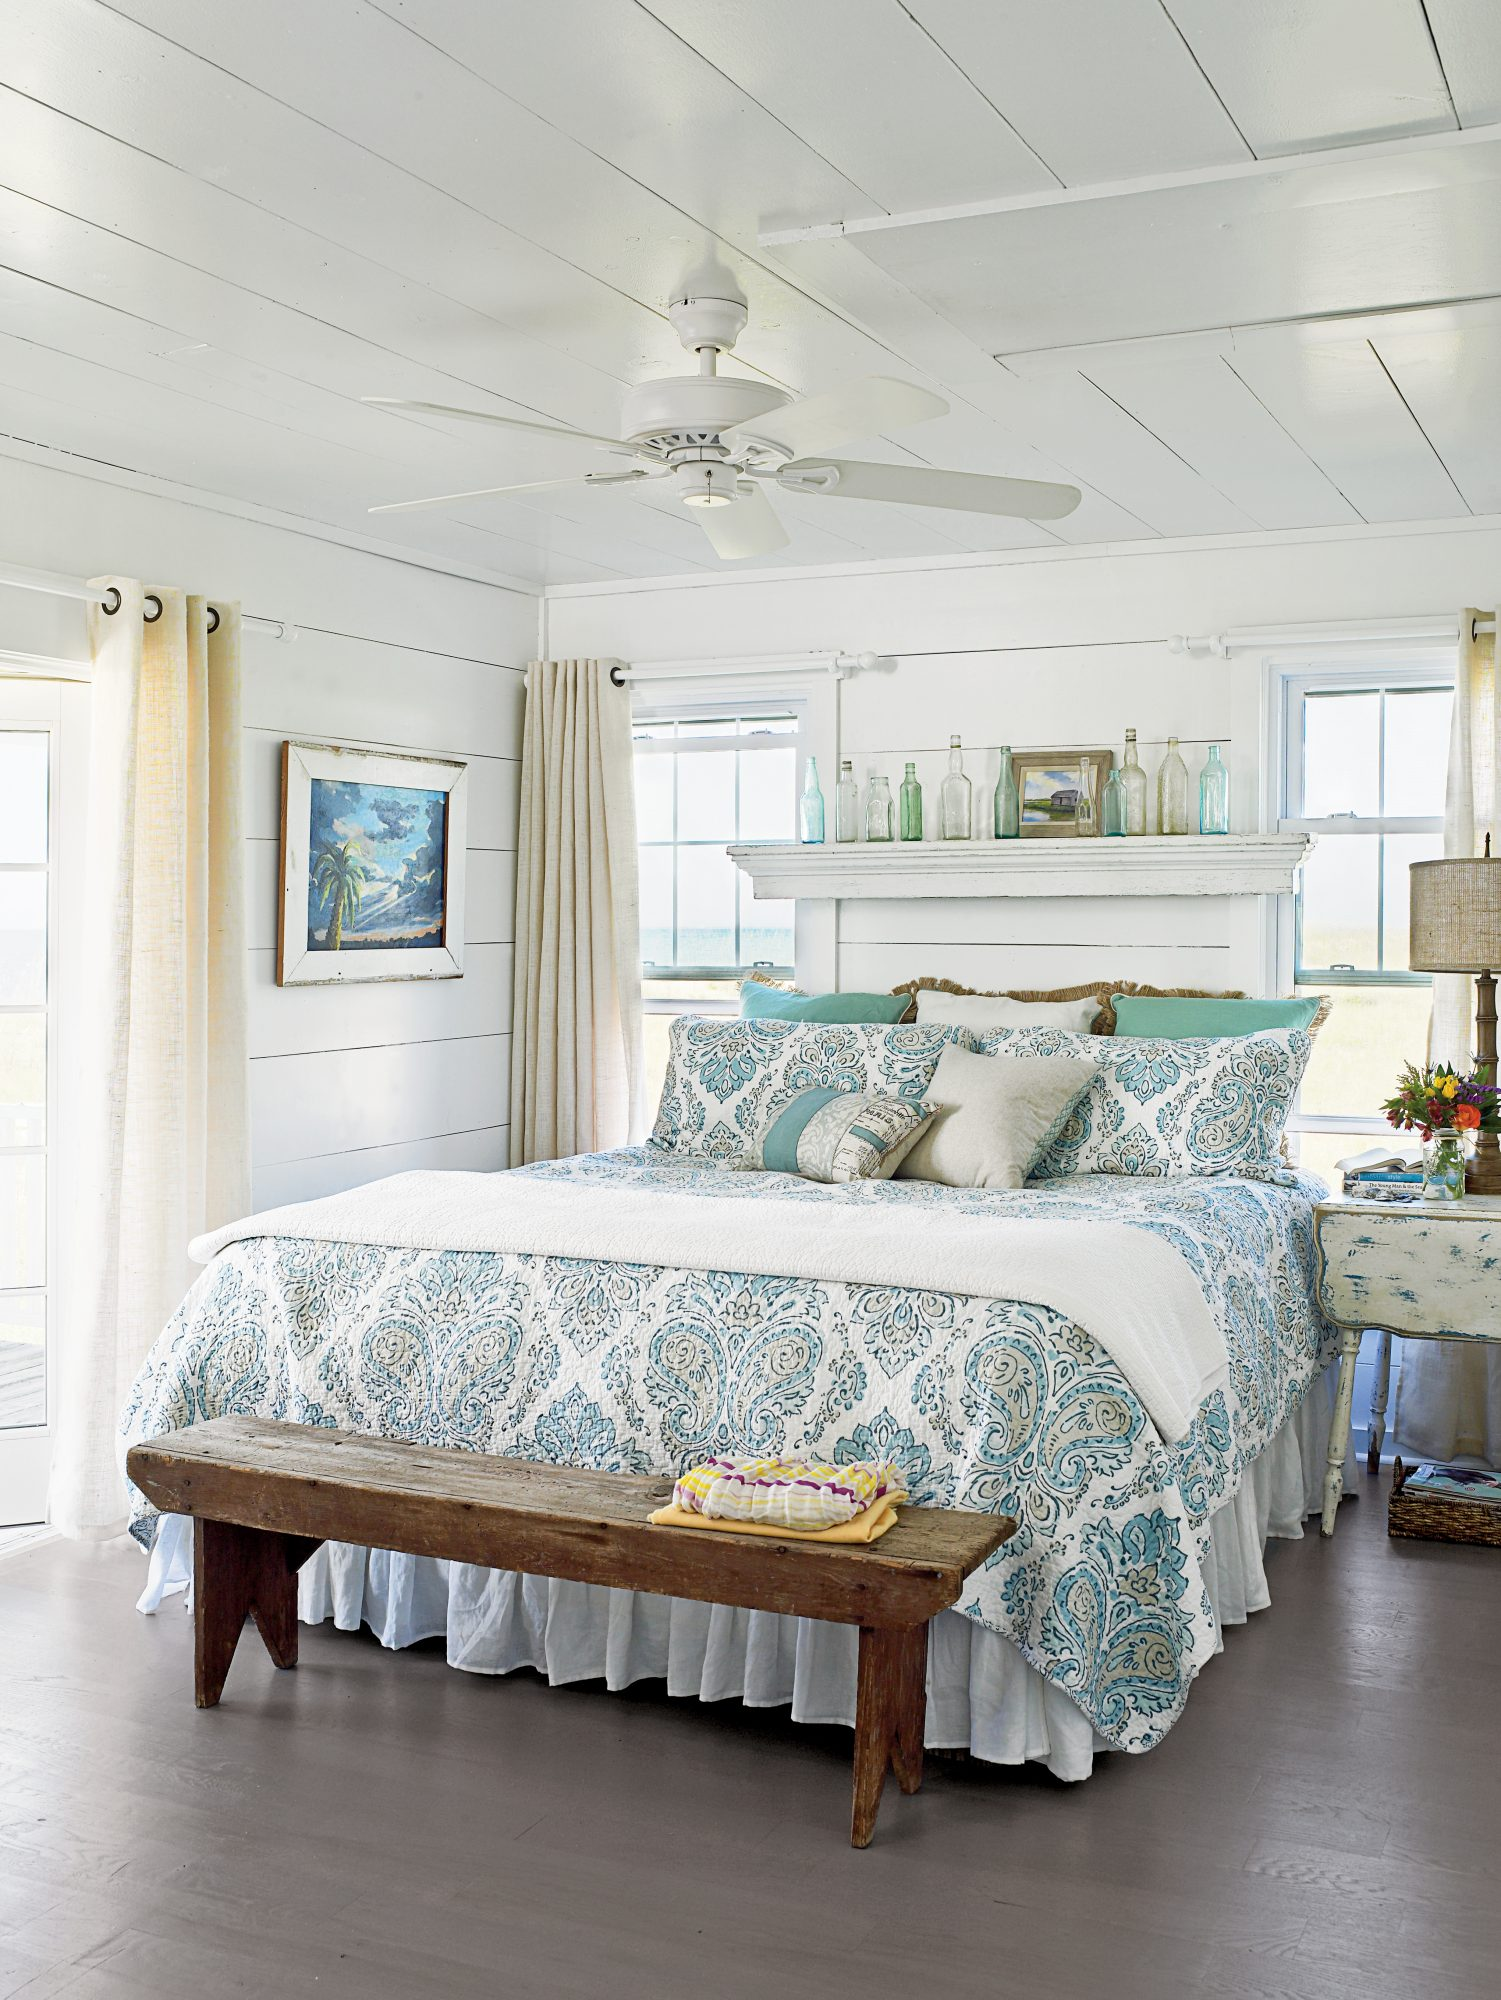 """A blue-and-green patterned duvet and accent pillows add a lively touch to the master bedroom in this Bald Head Island, North Carolina, cottage. """"I kept the decor simple but comfortable,"""" says designer and homeowner Tiffany McWhorter. """"I didn't want any on"""